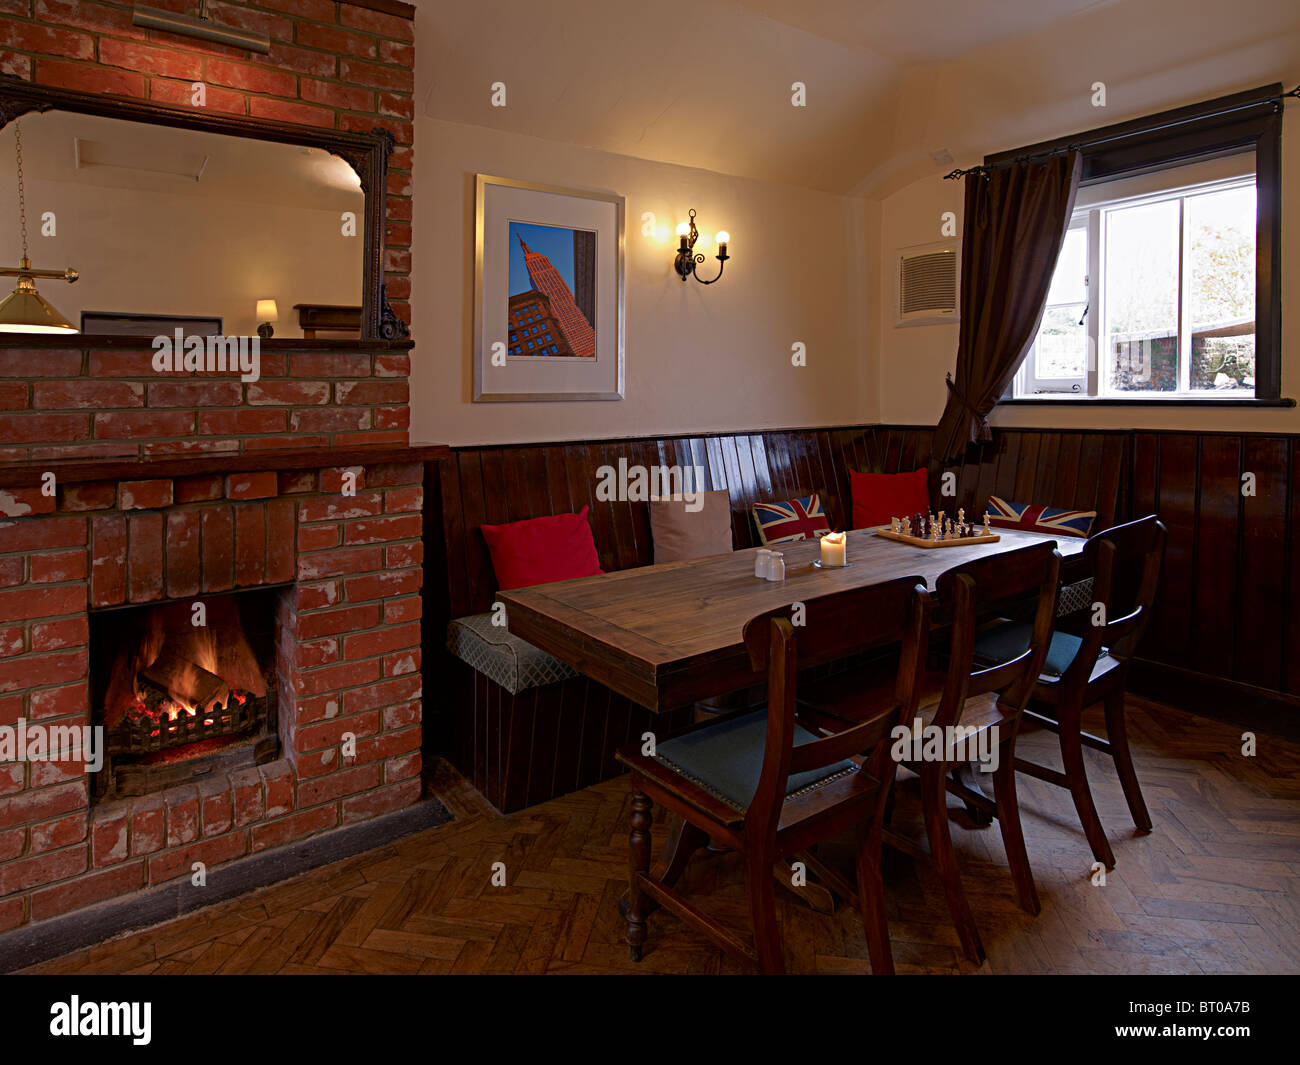 An interior of an old english pub or public house in the UK Stock